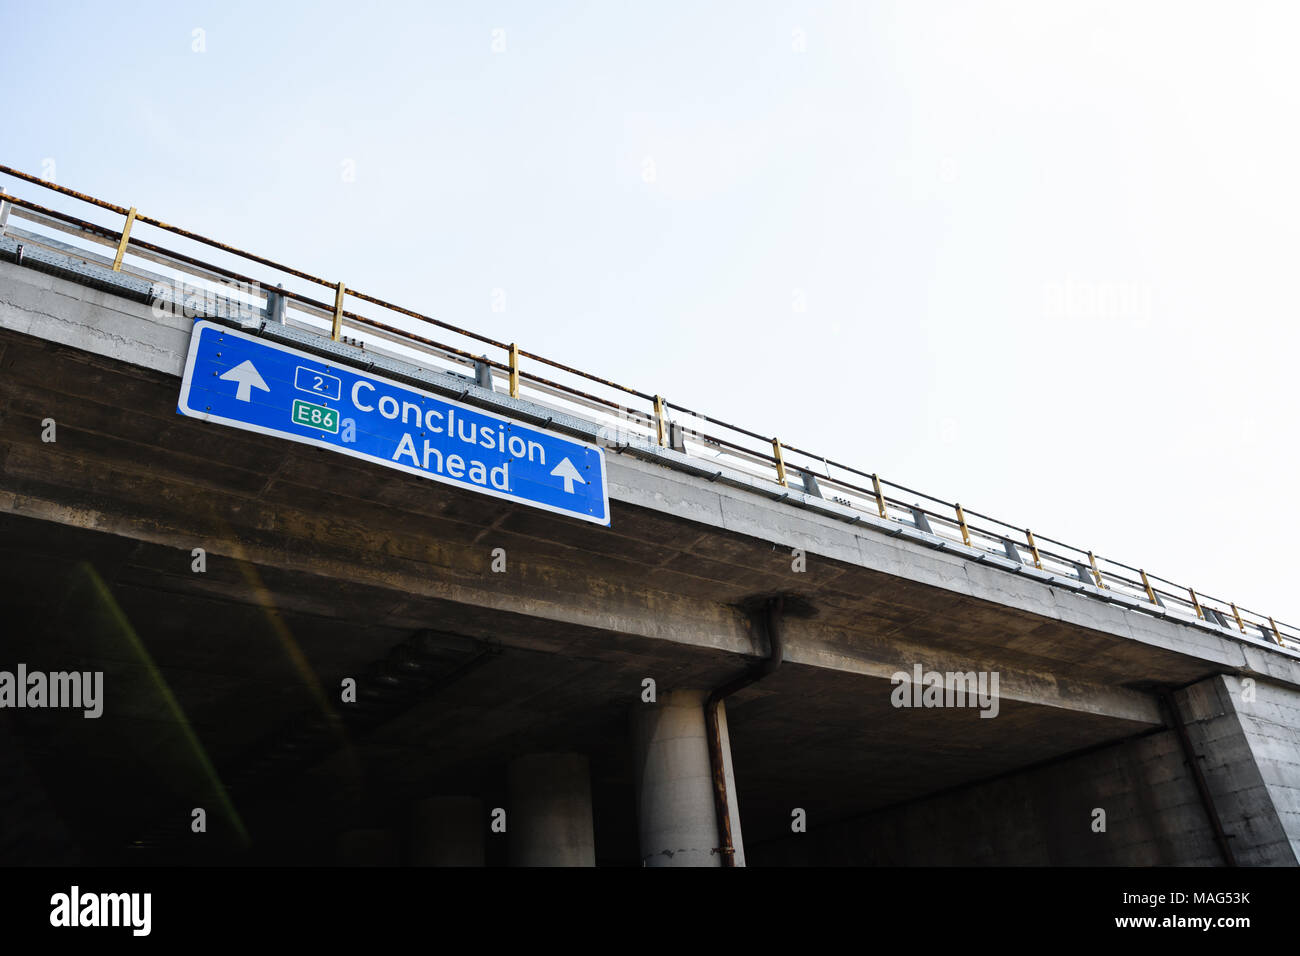 Conclusion Ahead Blue Road Sign Against Clear Sky - Stock Image